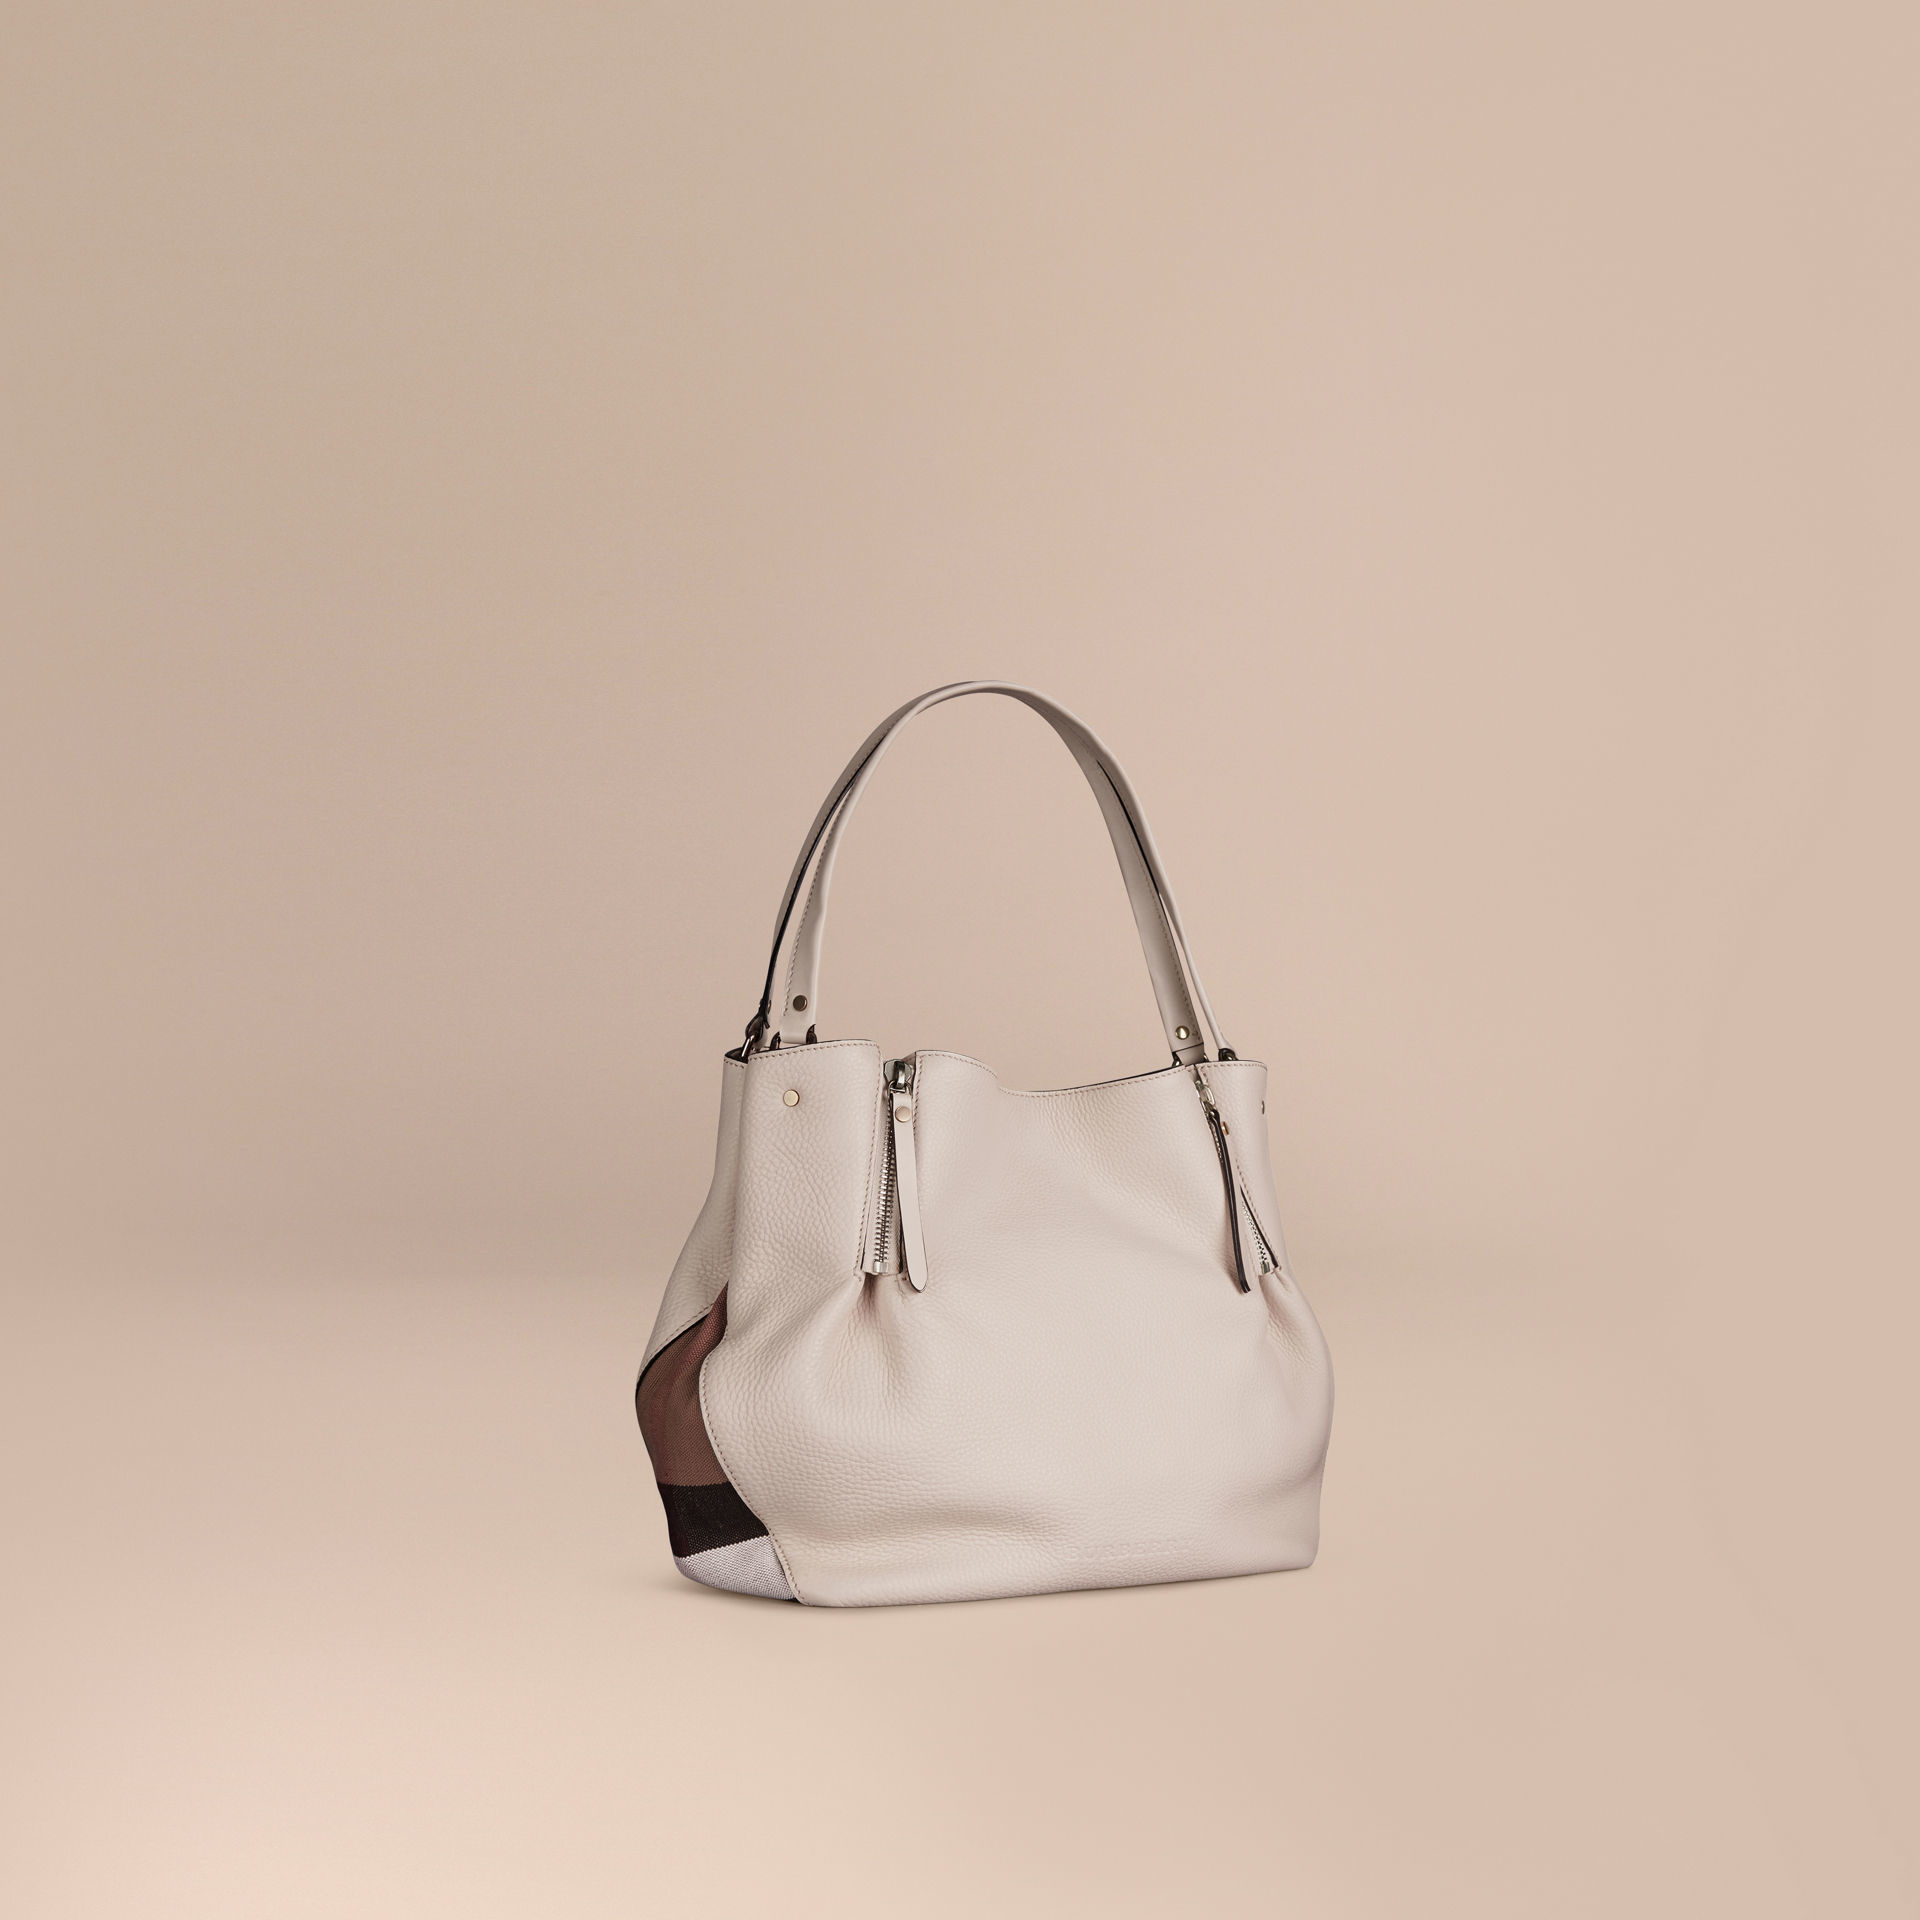 7b47db338d3b Lyst - Burberry Medium Check Detail Leather Tote Bag in White